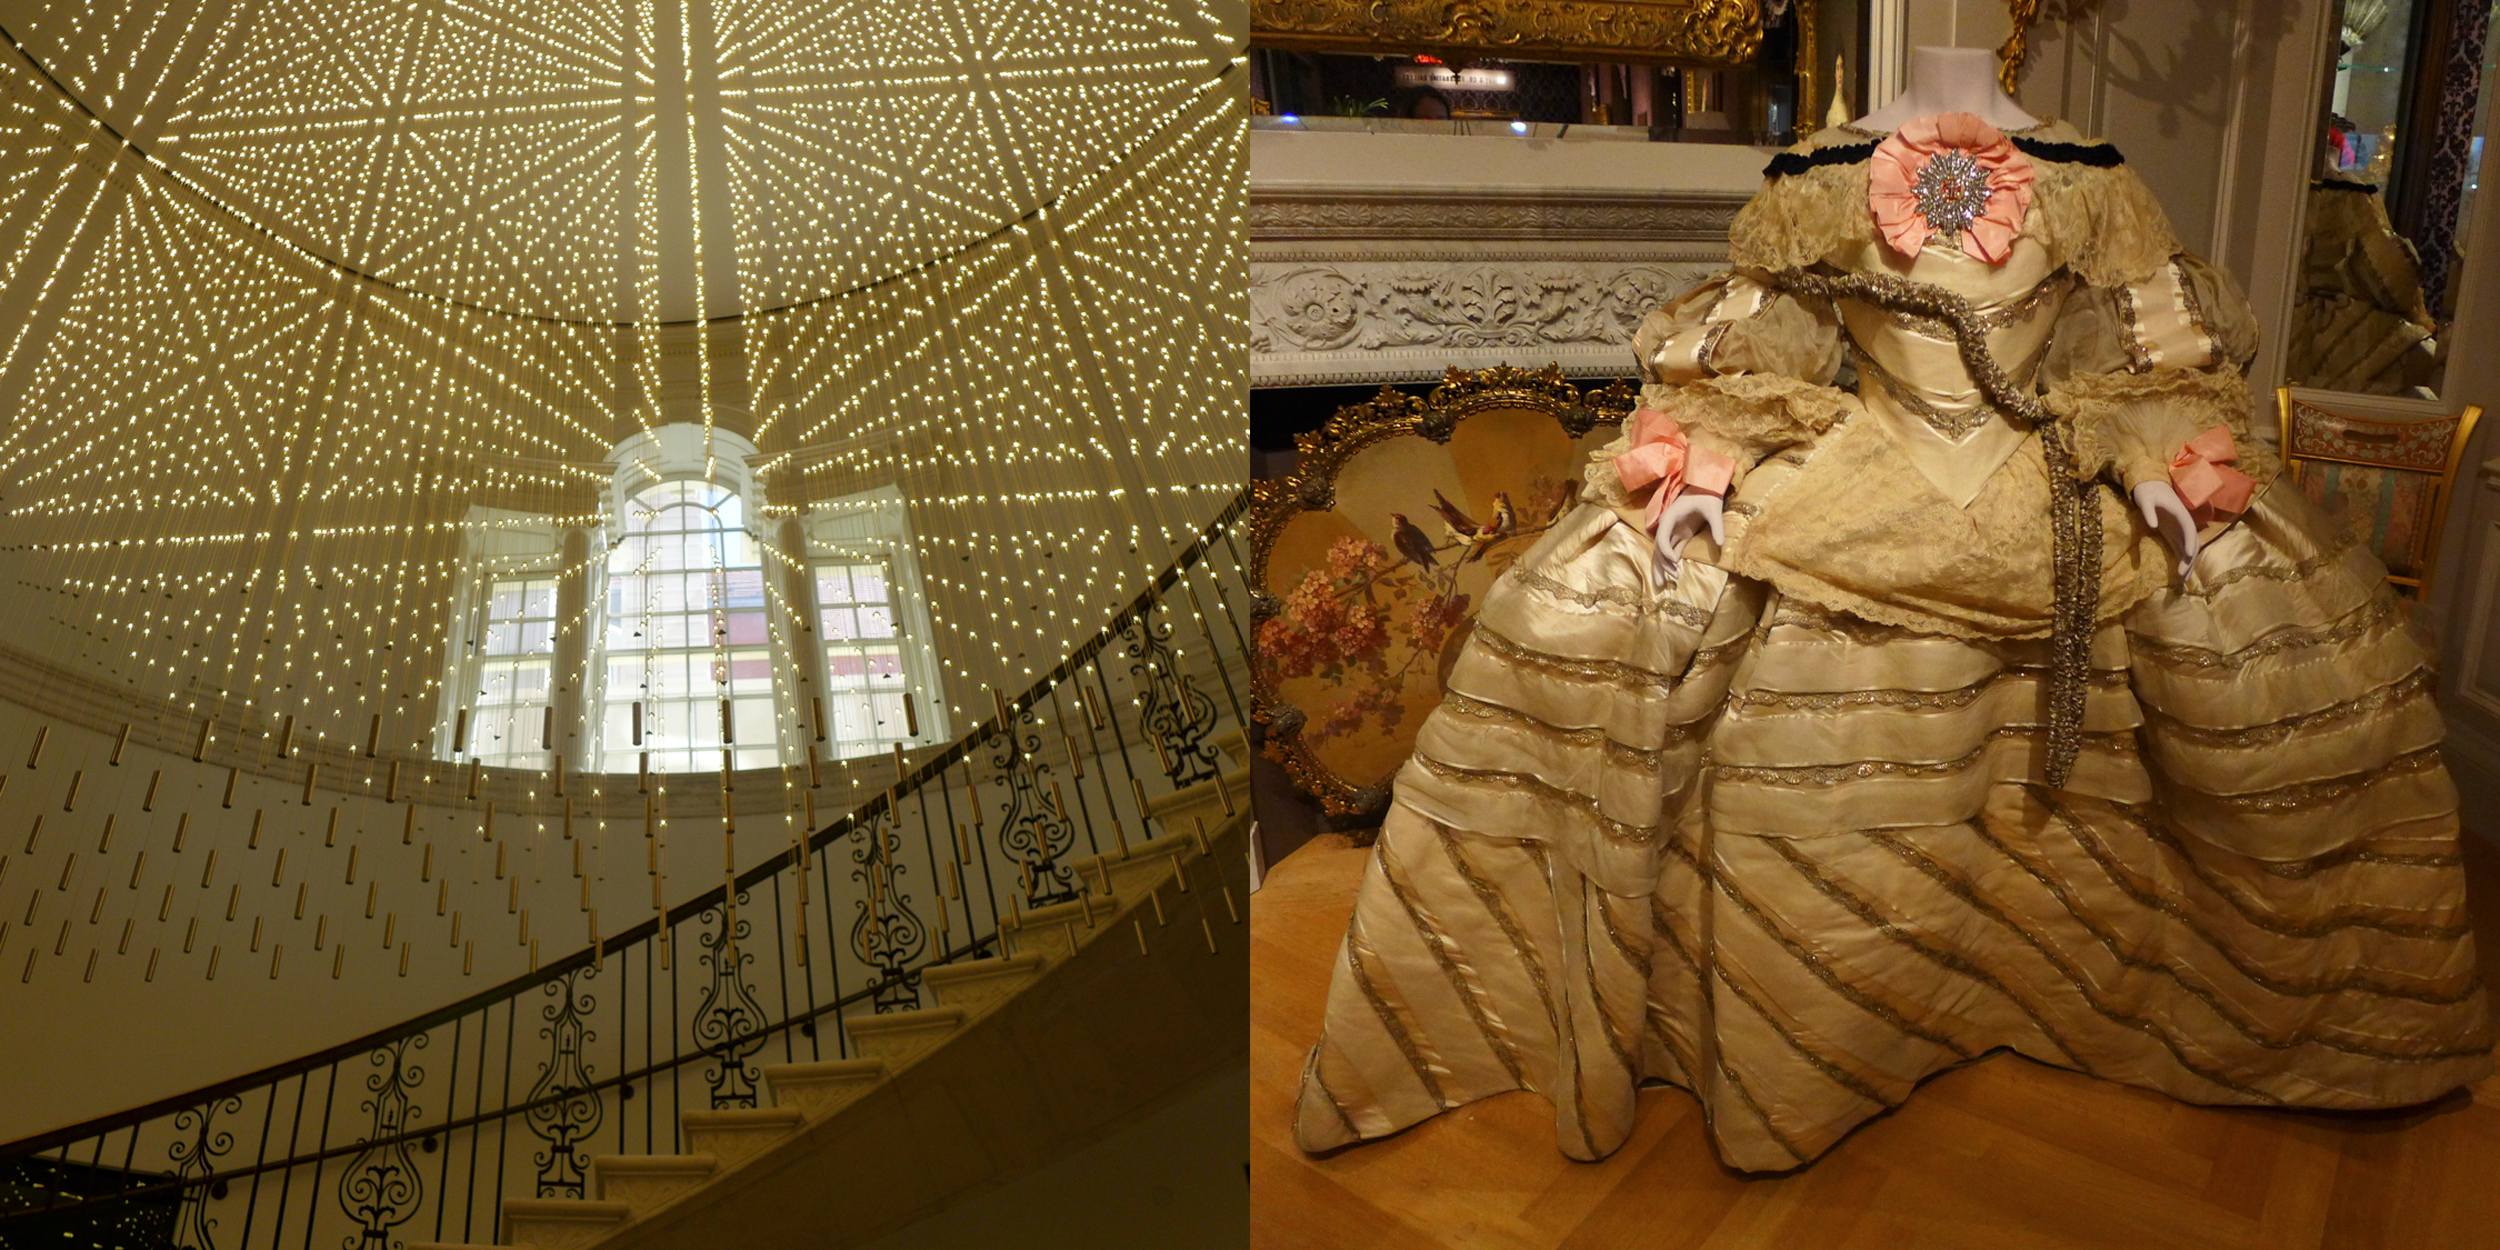 MCNY Stairs/Museum Dress